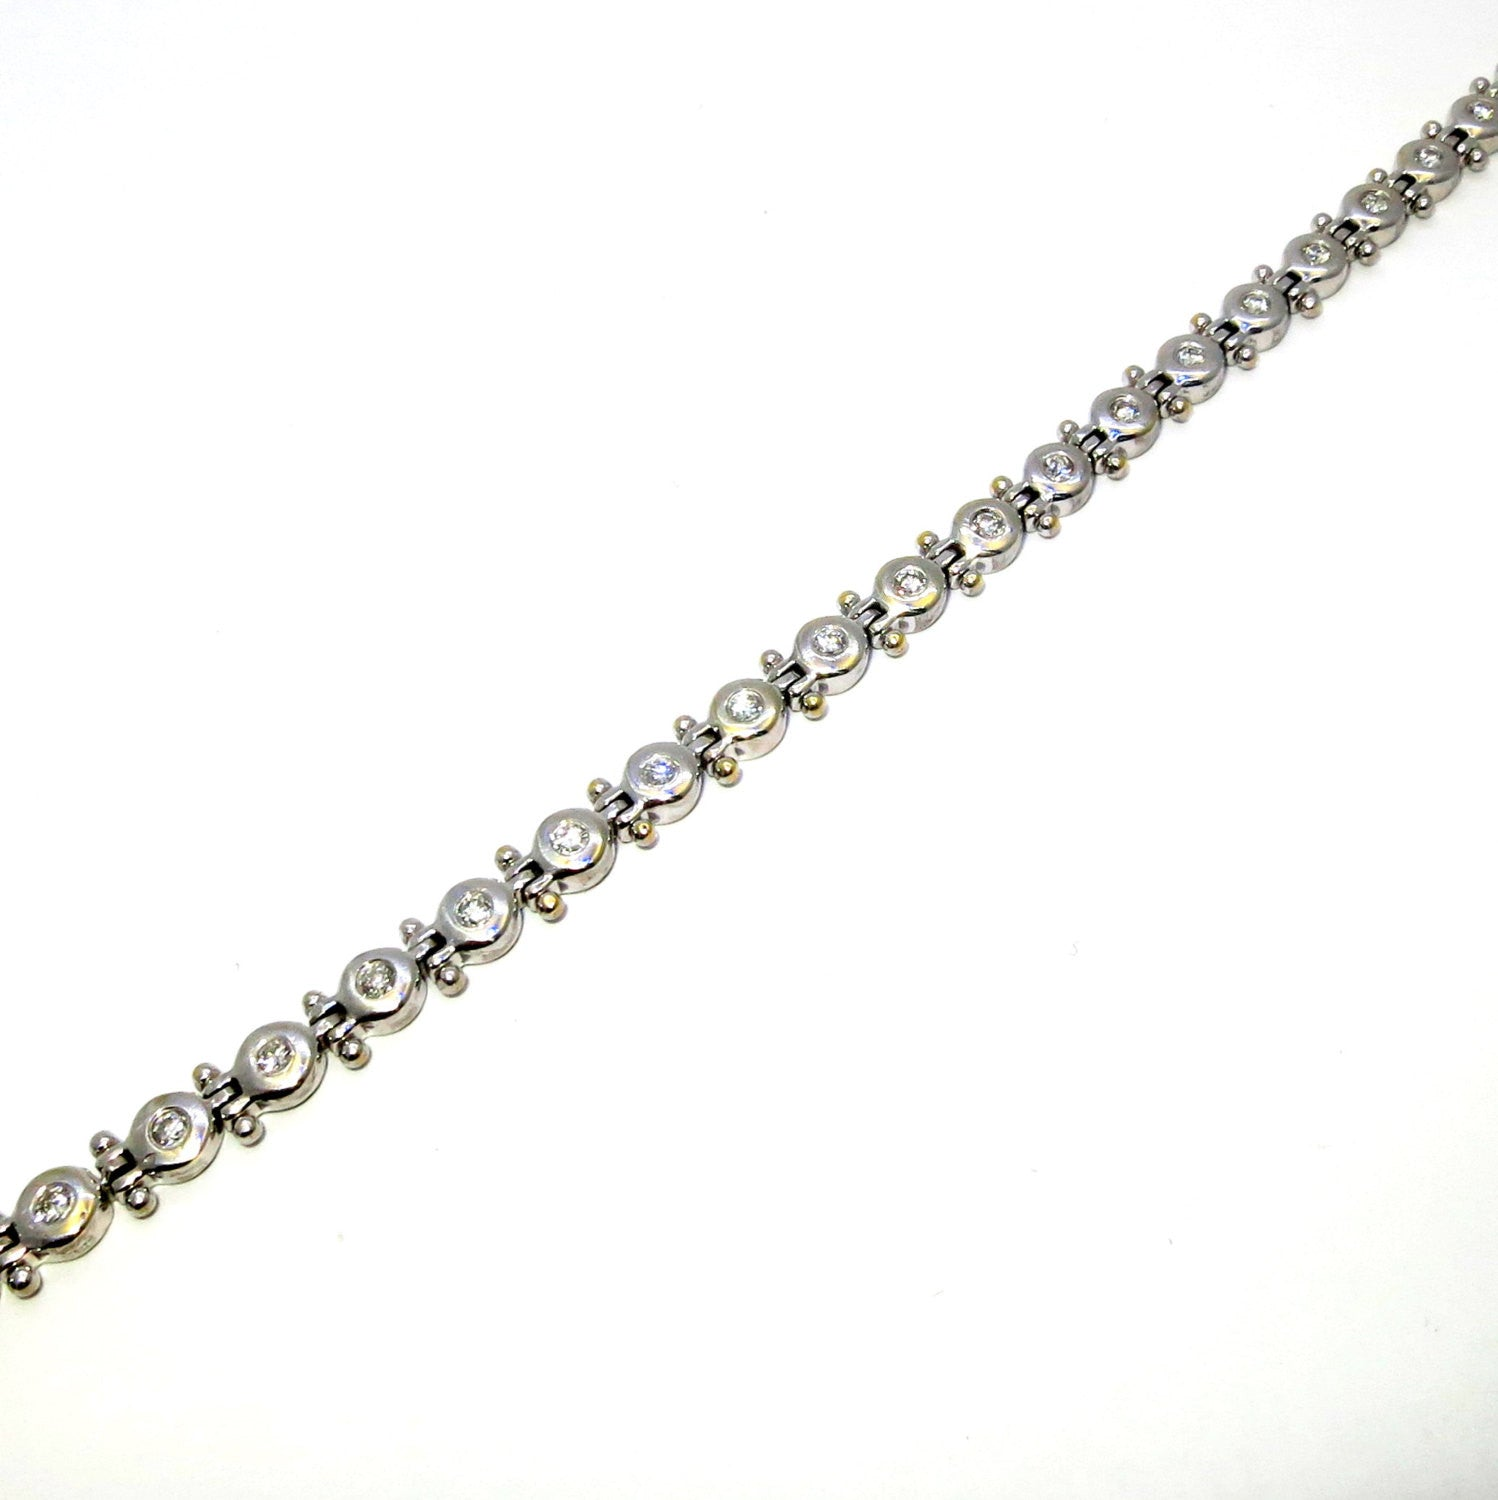 Diamond Tennis Bracelet,  Unique Bezel Setting, 1.4 Carats on 14K Gold